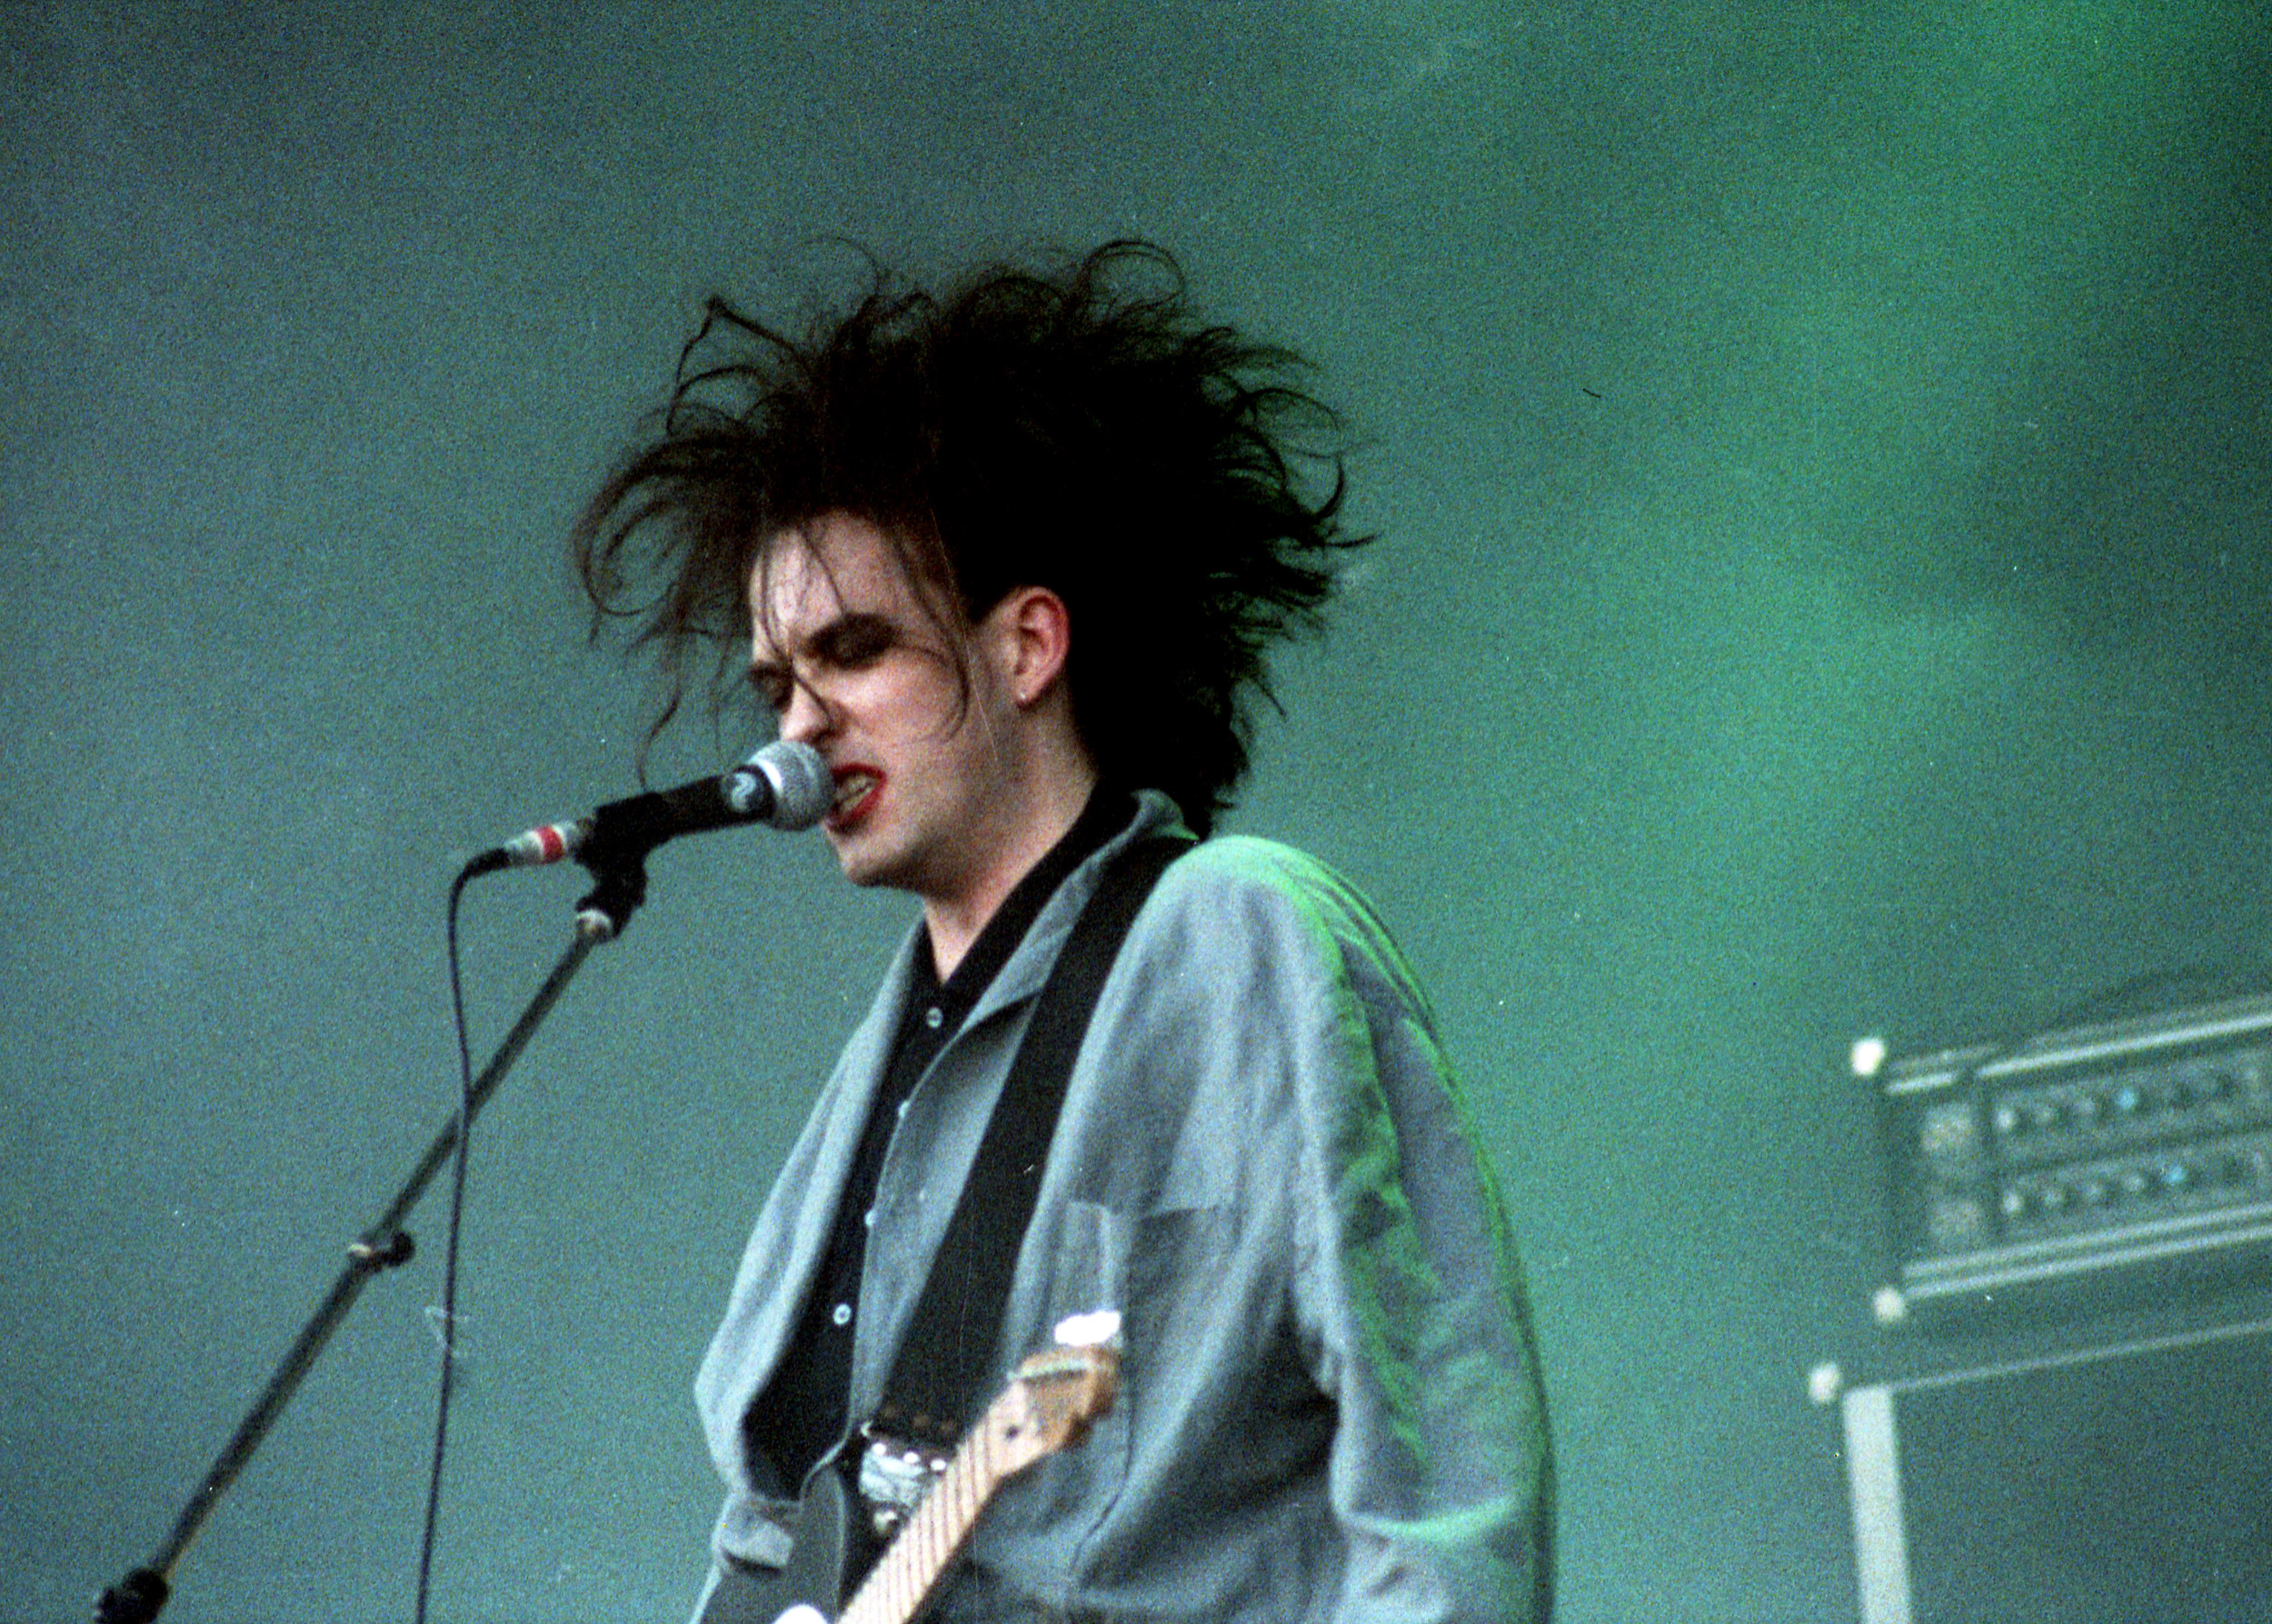 pop muziek popmuziek muzikanten artiest The Cure zanger Robert Smith Geleen Pinkpop 19 5 1986 rock newwave